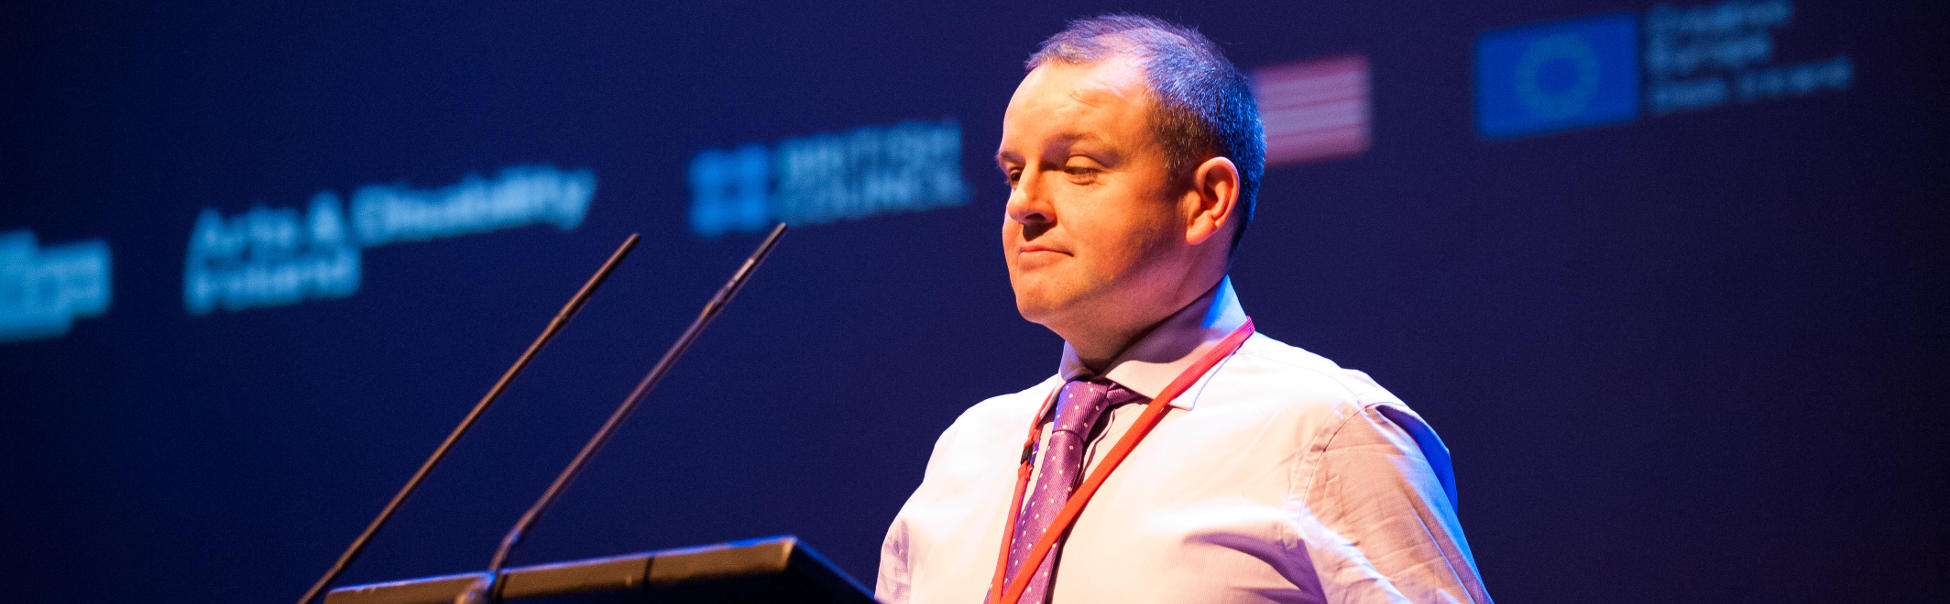 Pádraig Naughton, Director of Arts & Disability Ireland, speaking at the Creative Connections conference in Galway, January 2016